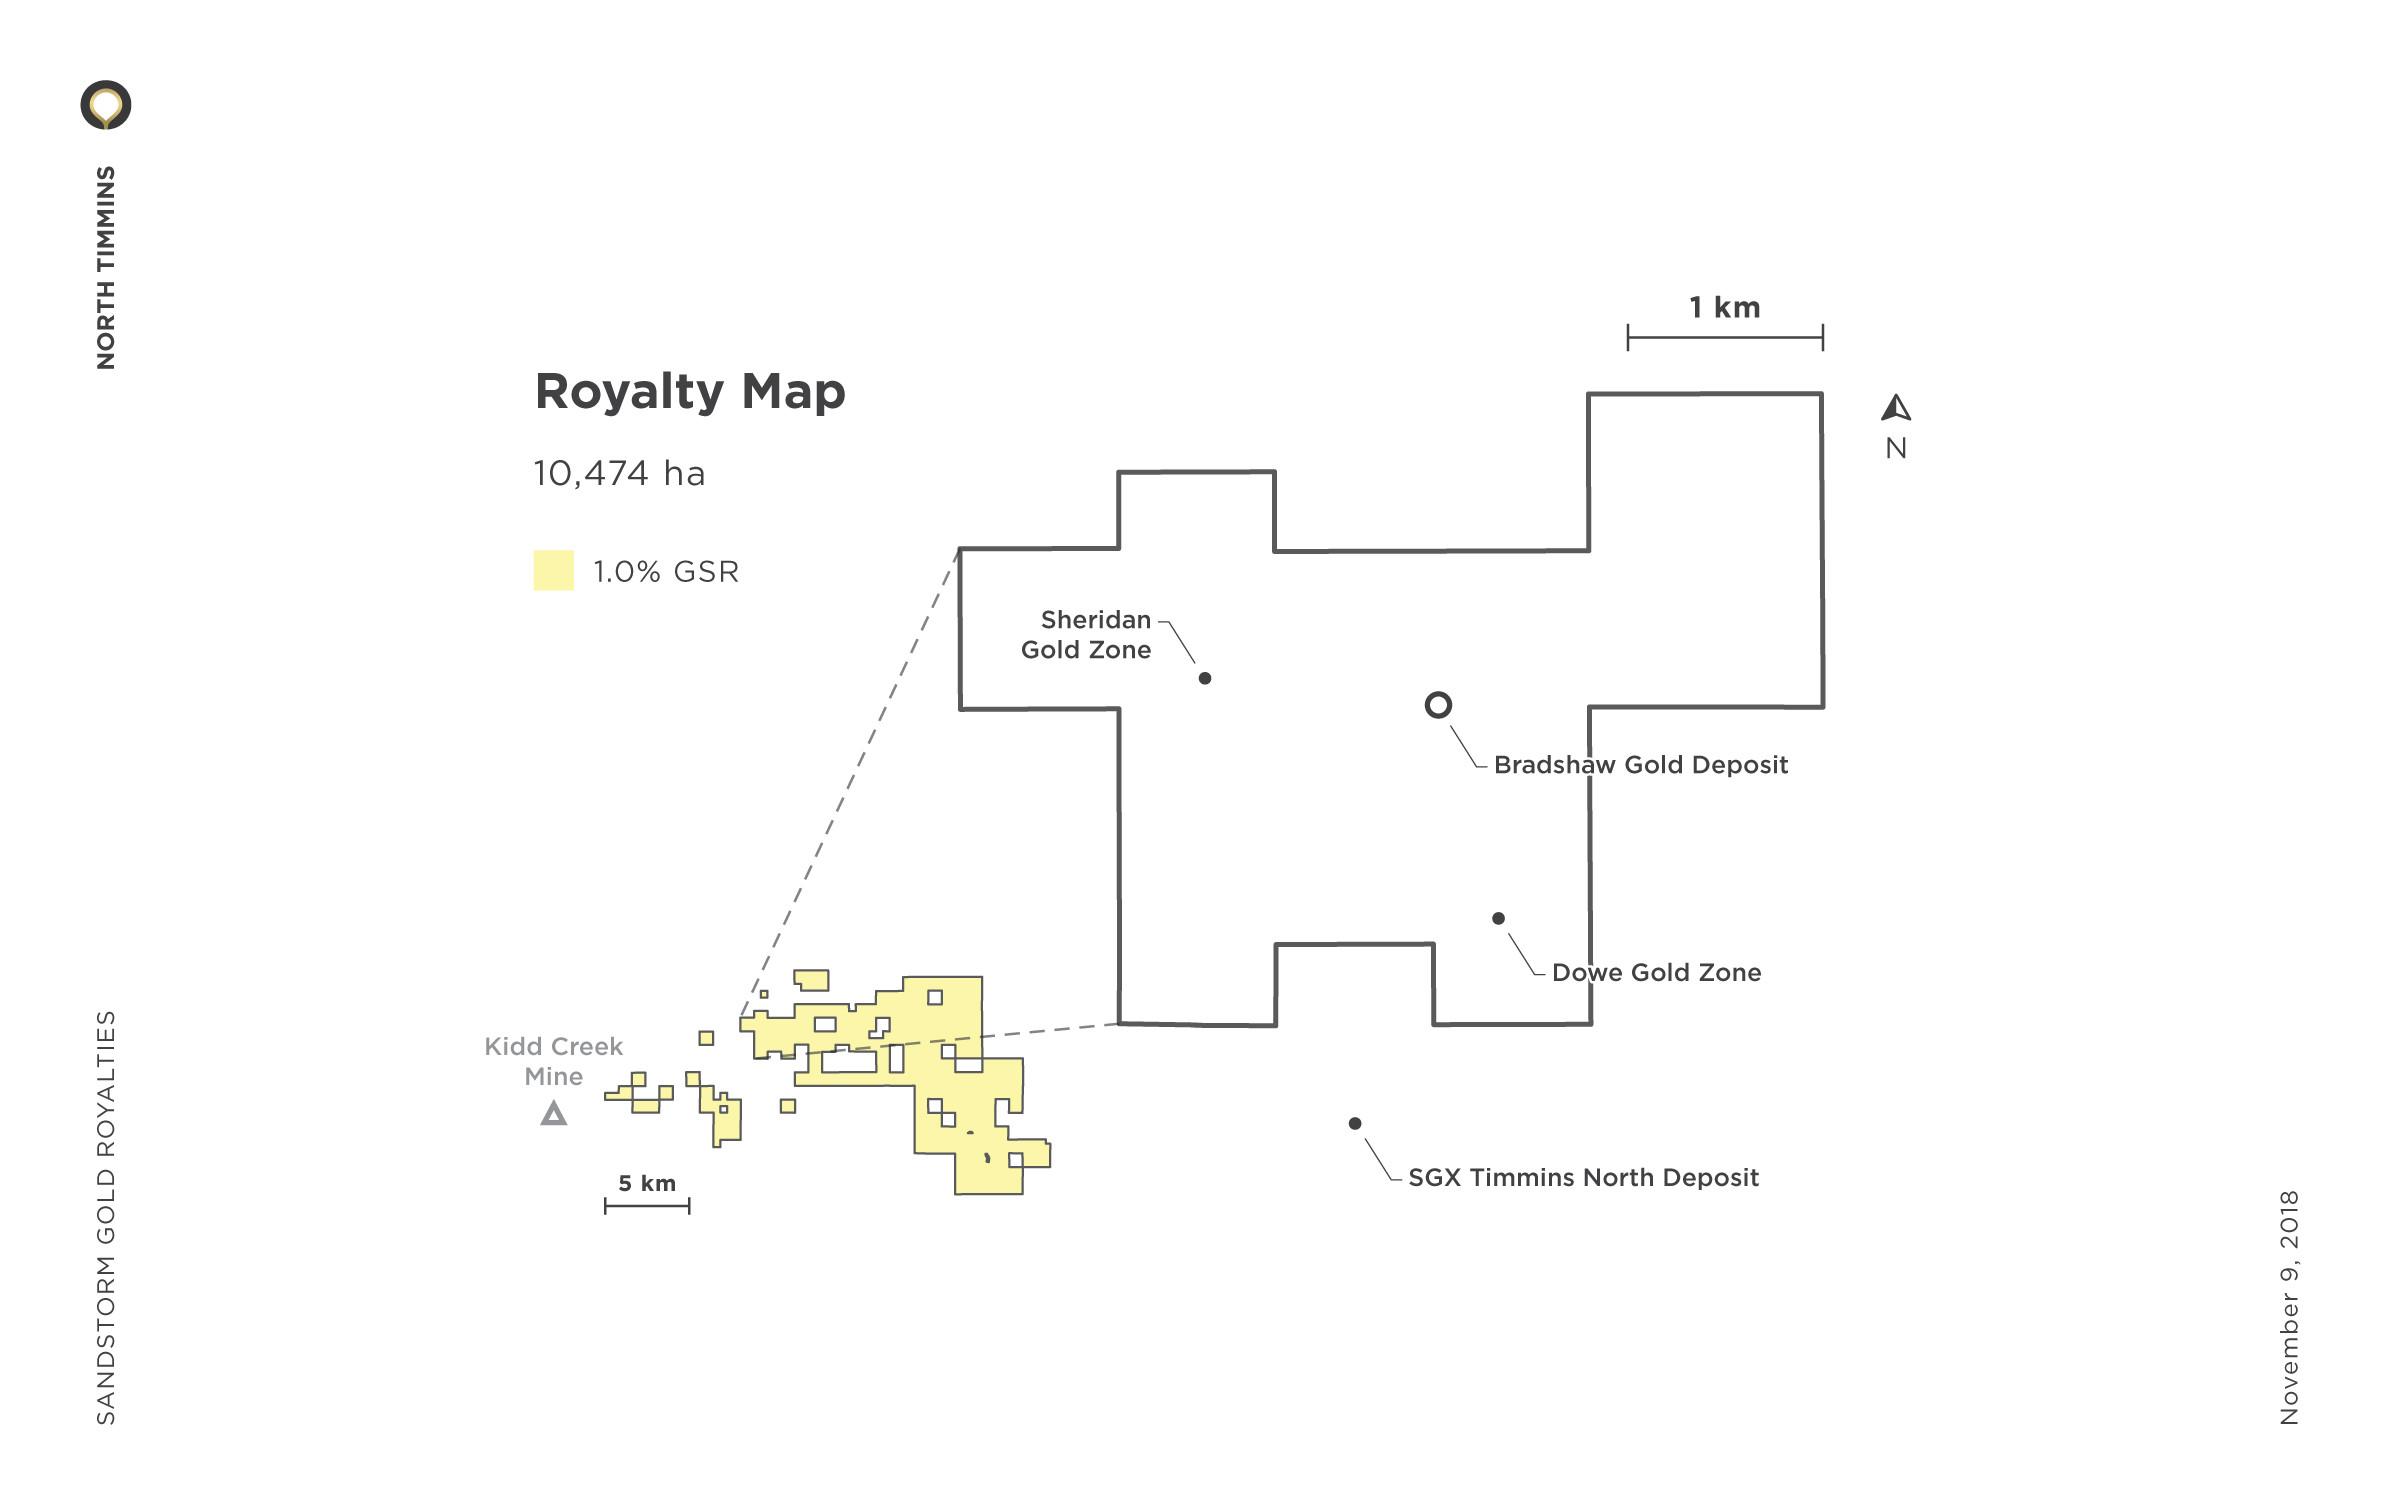 North Timmins Royalty Map